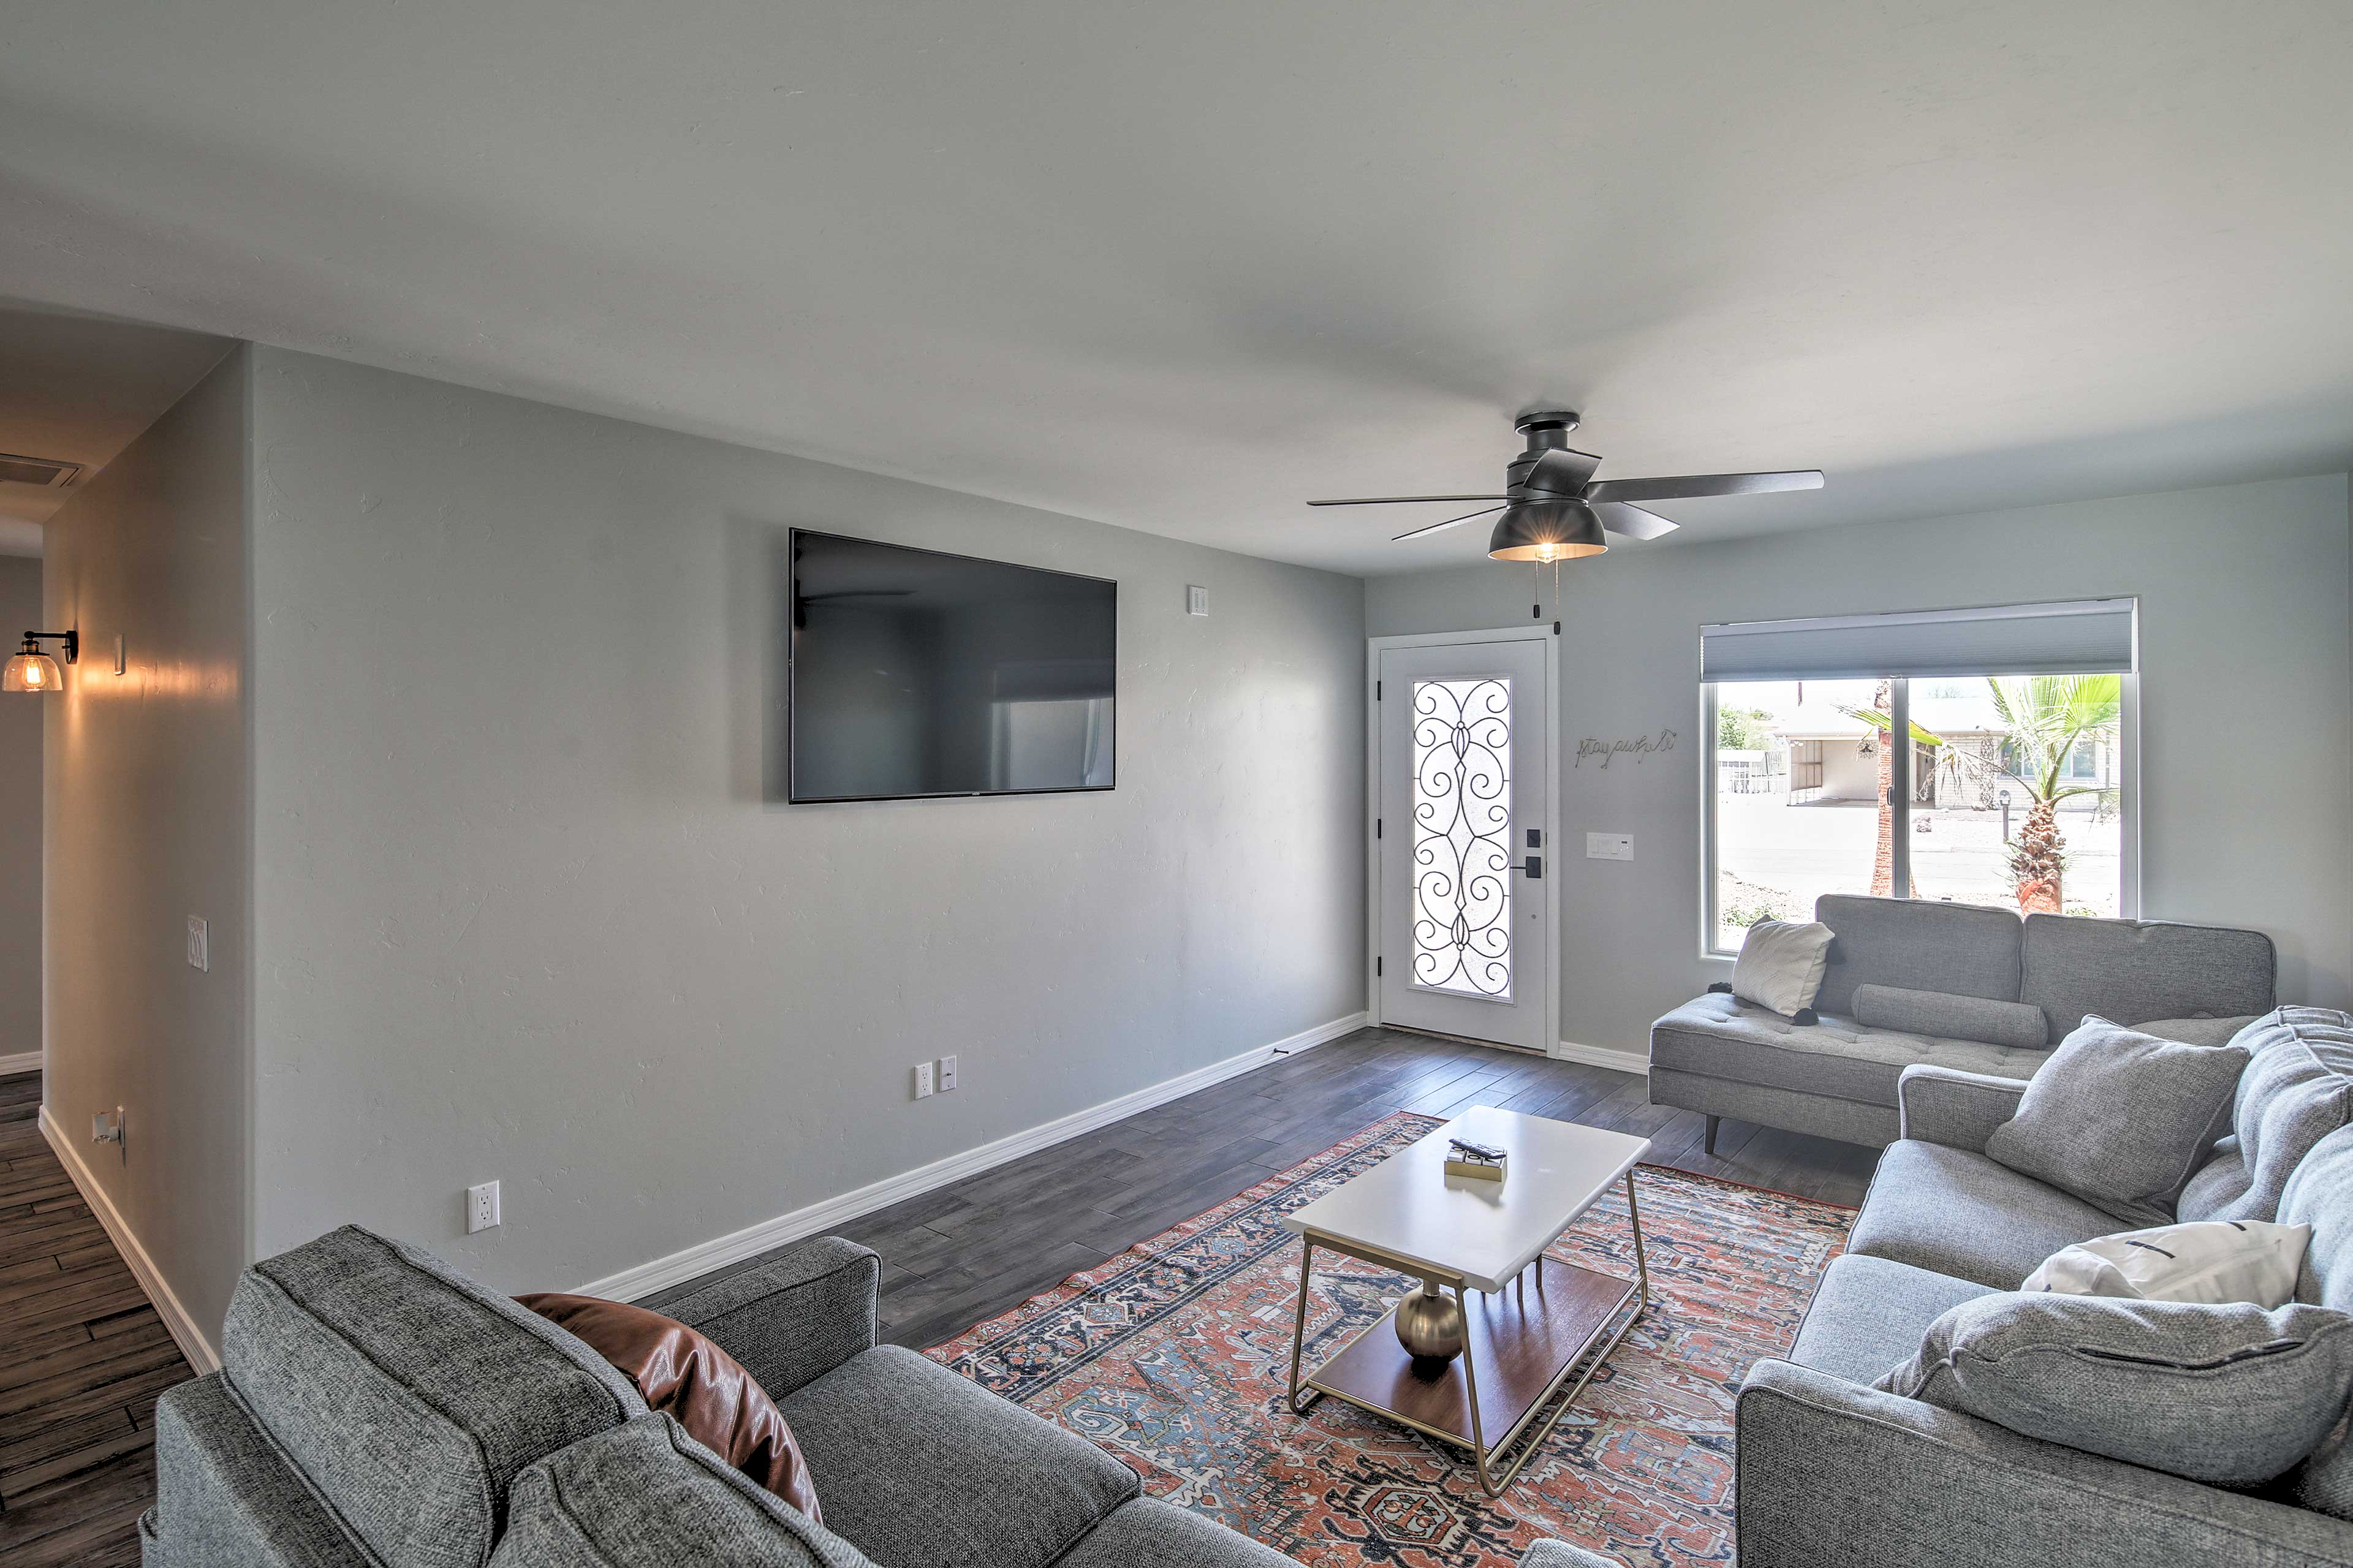 The air conditioning and ceiling fans will keep you cool!